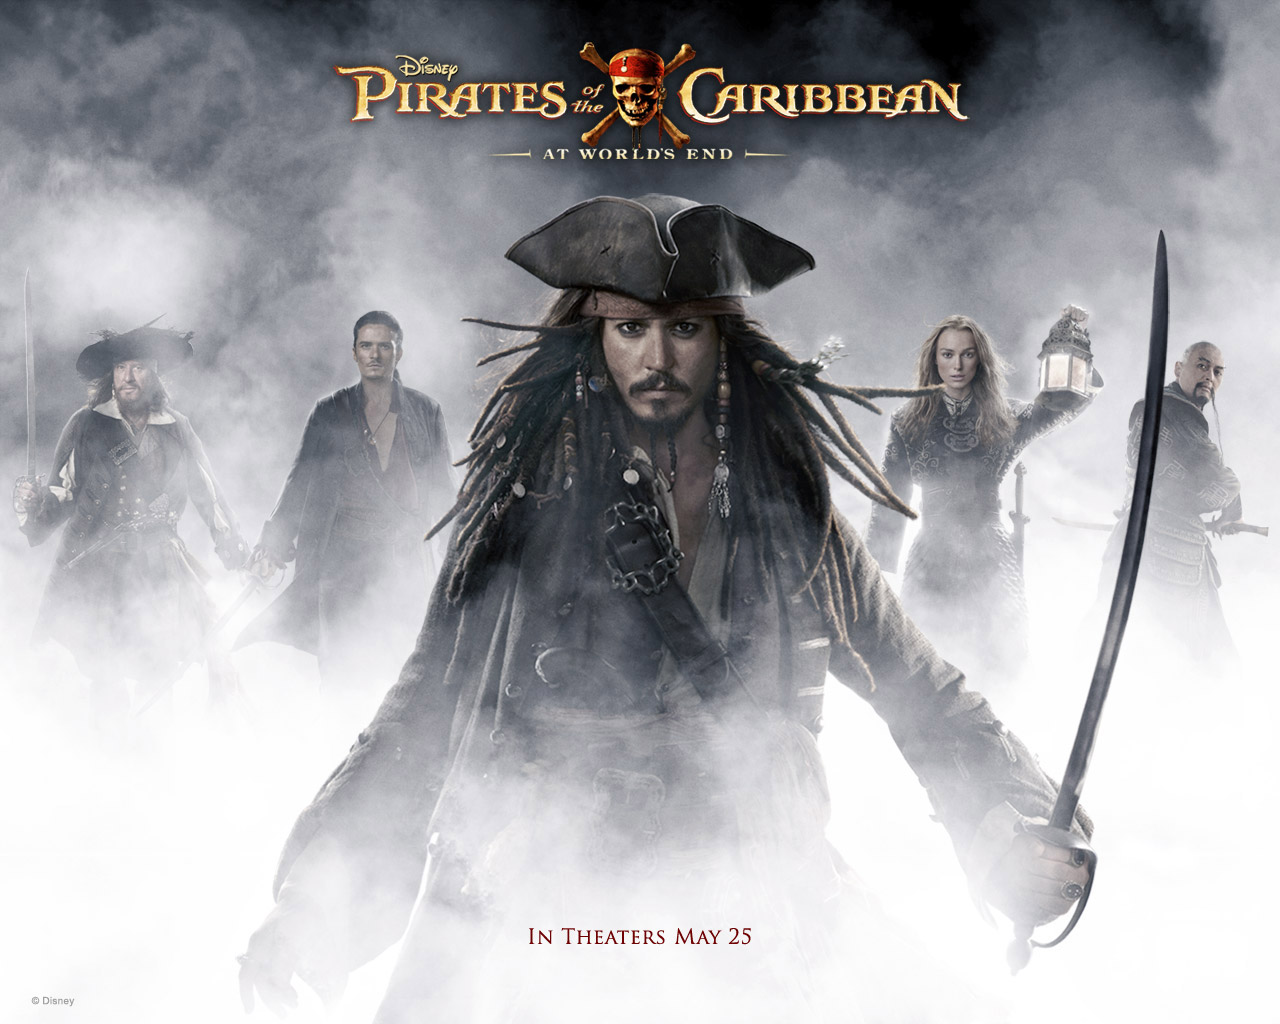 http://2.bp.blogspot.com/_MZeh3uFaOnI/TBYKe5WWPuI/AAAAAAAAG5M/boDPMB-B1hw/s1600/Johnny_Depp_in_Pirates_of_the_Caribbean-_At_Worlds_End_Wallpaper_1_800.jpg